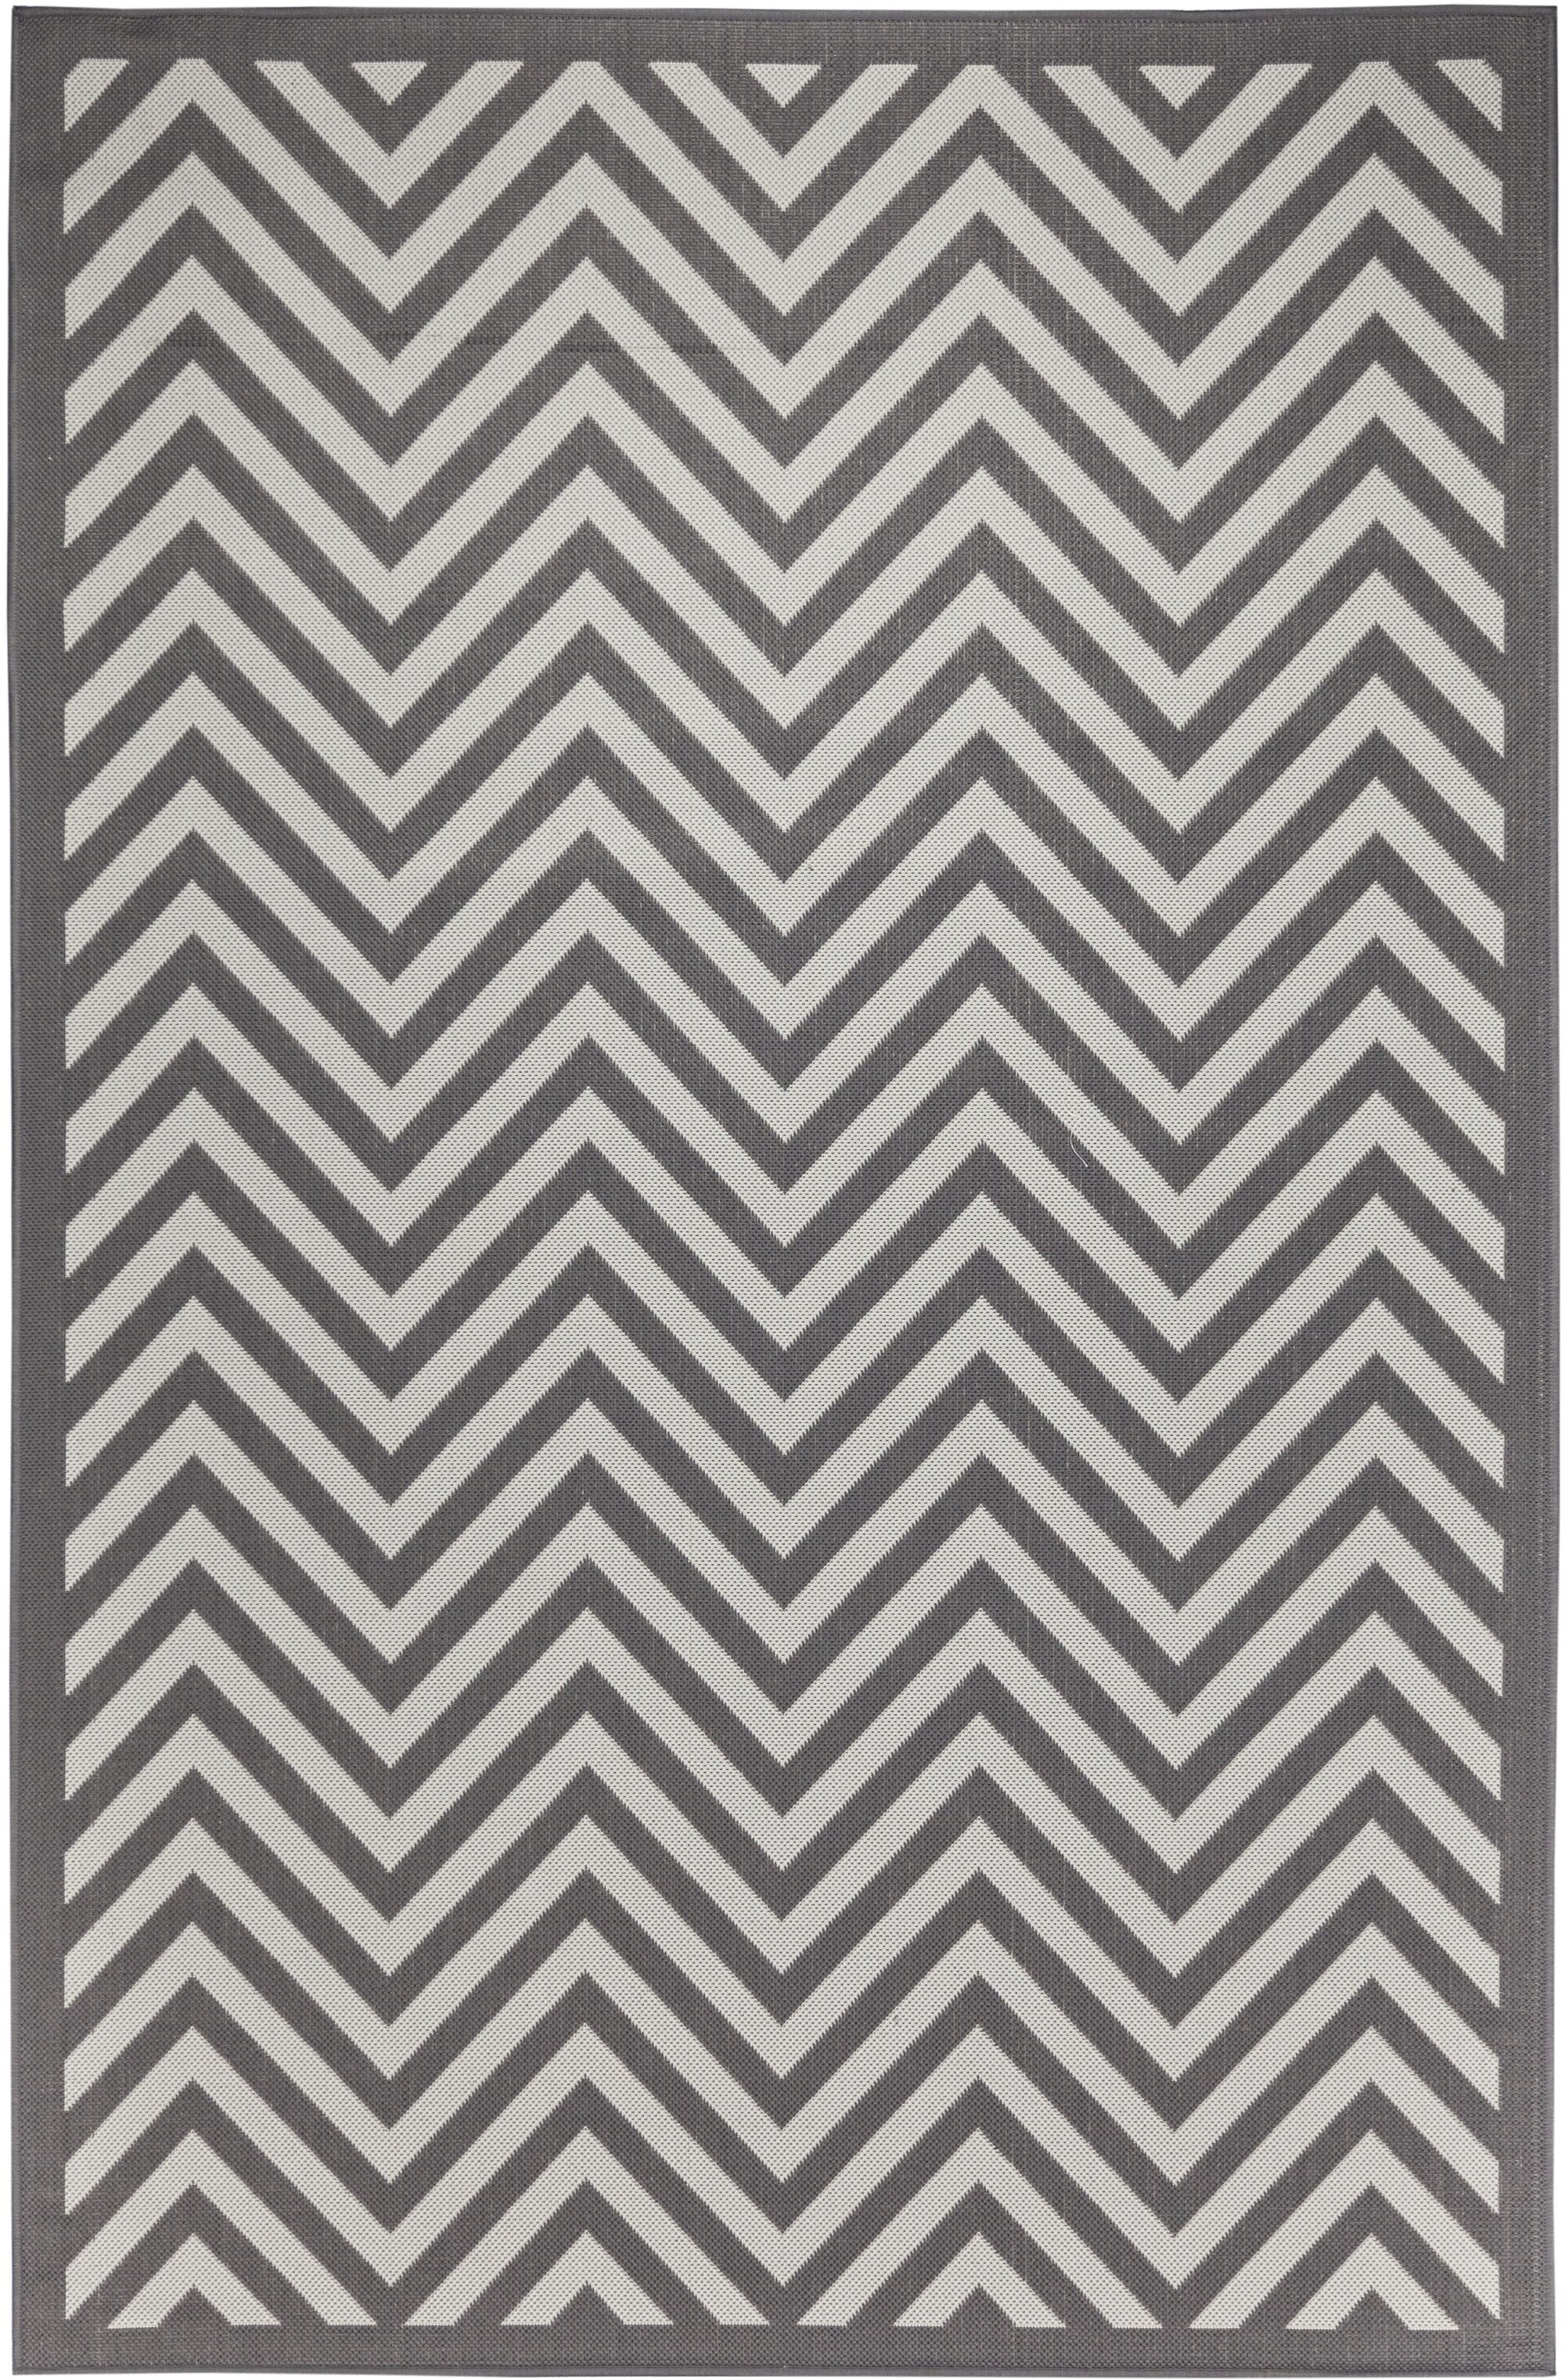 Trip Chevron Light Gray/Anthracite Indoor/Outdoor Area Rug Rug Size: Rectangle 8' x 10'